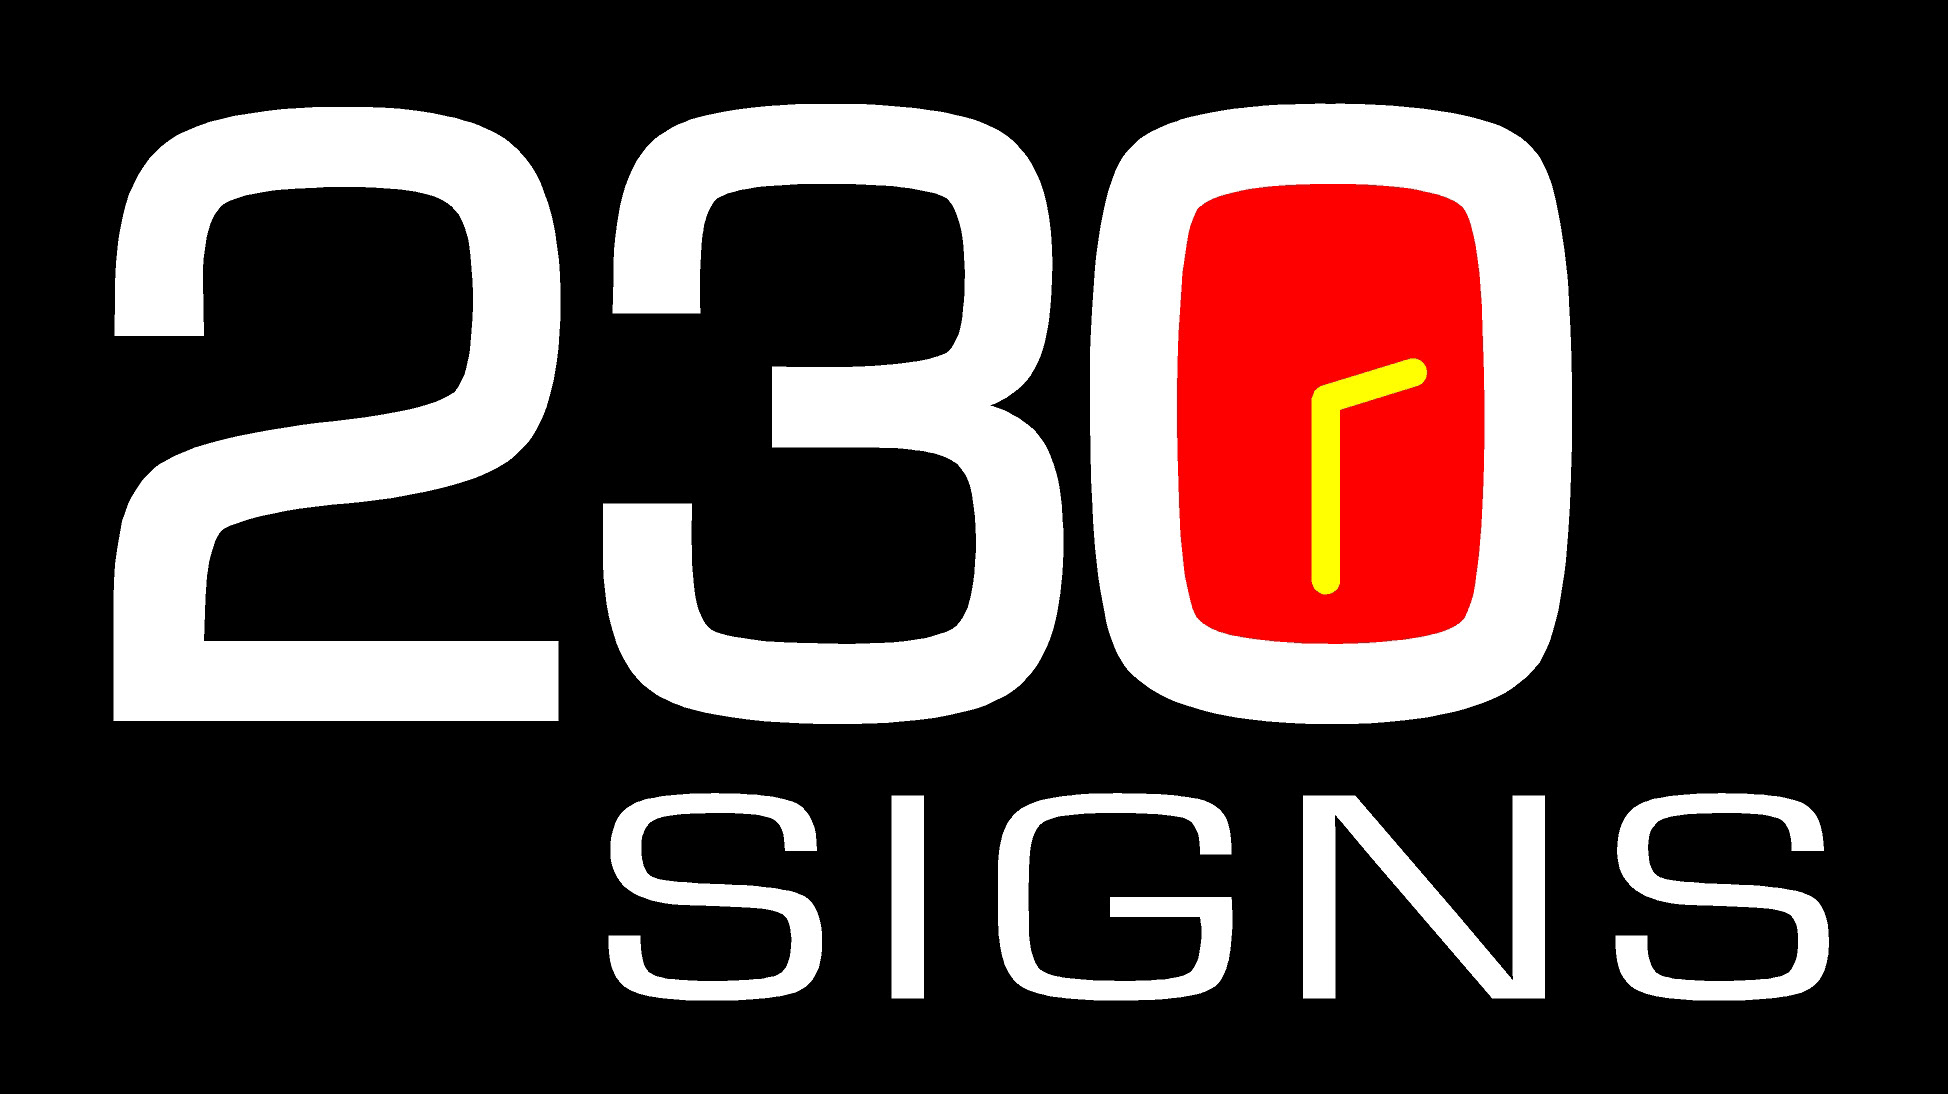 230 signs